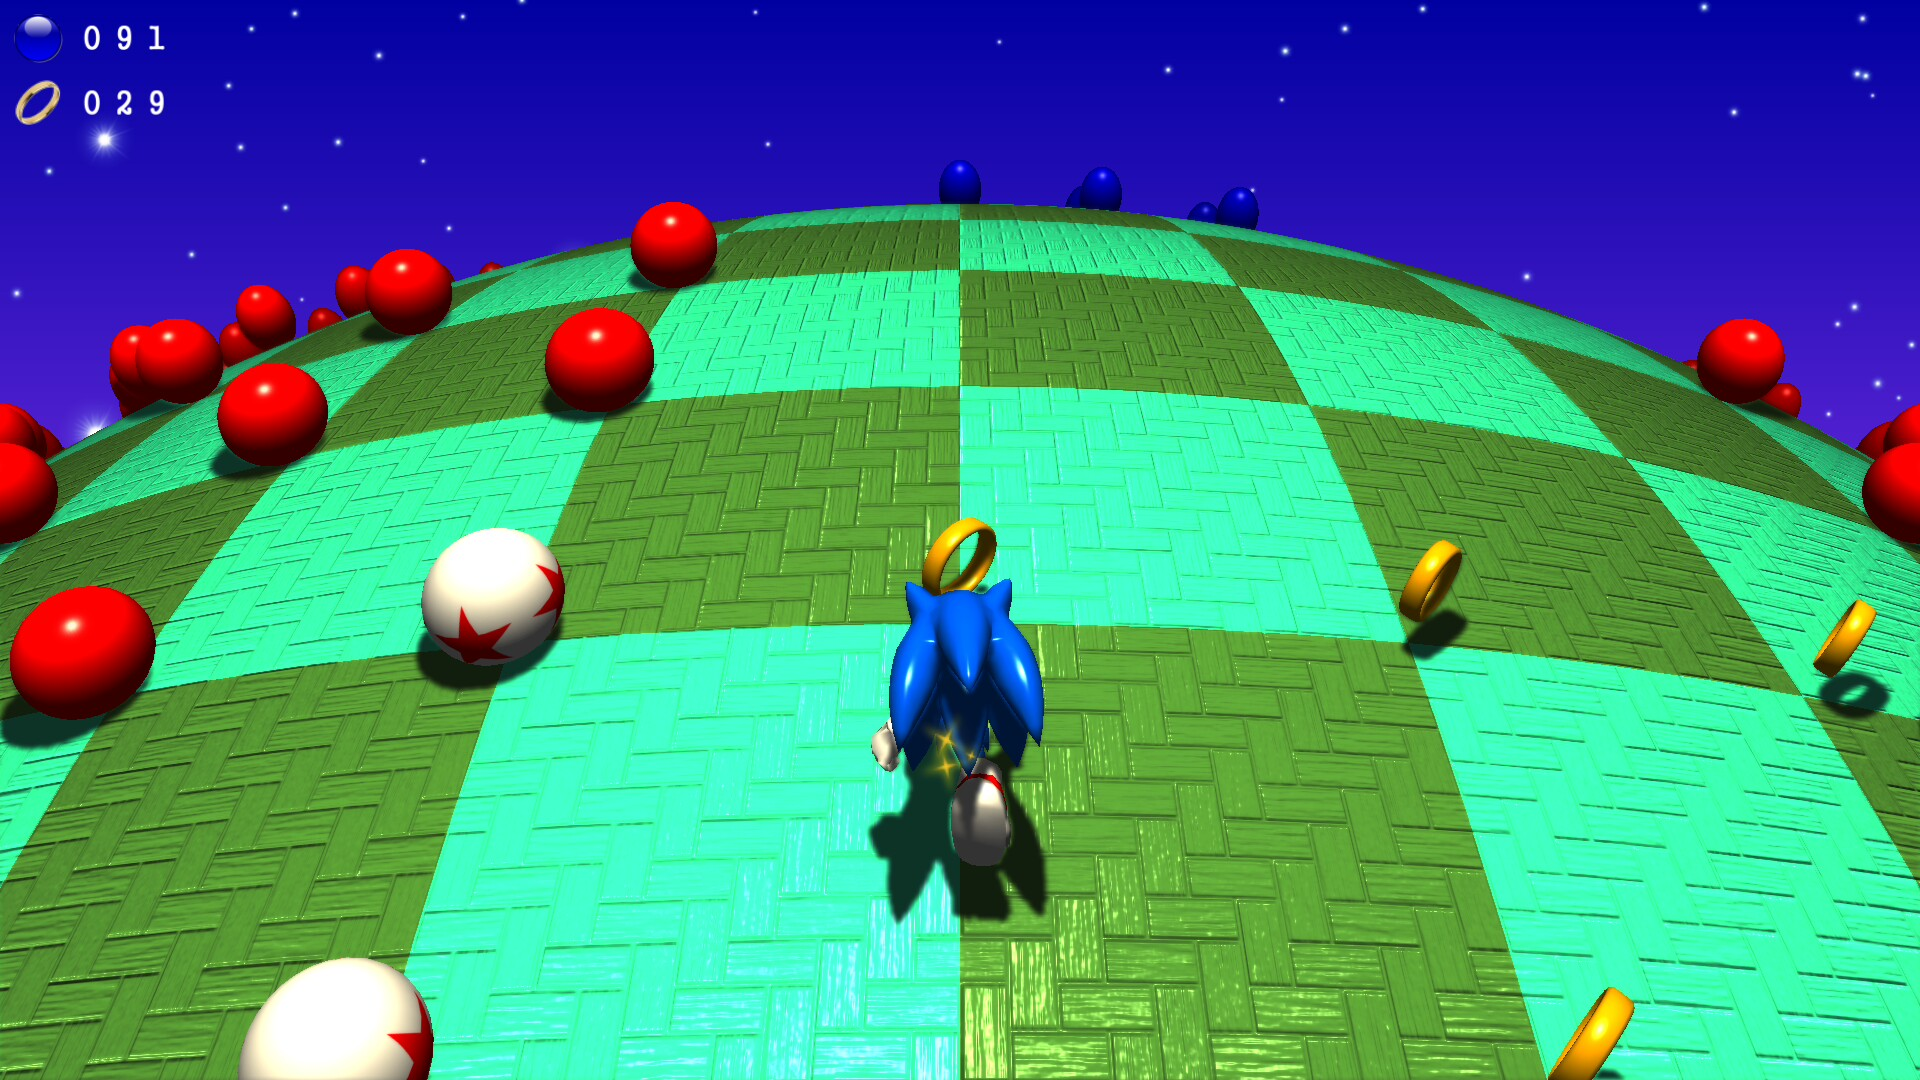 Sonic The Hedgehog 4 Episode 3 Sonic Fanon Wiki The